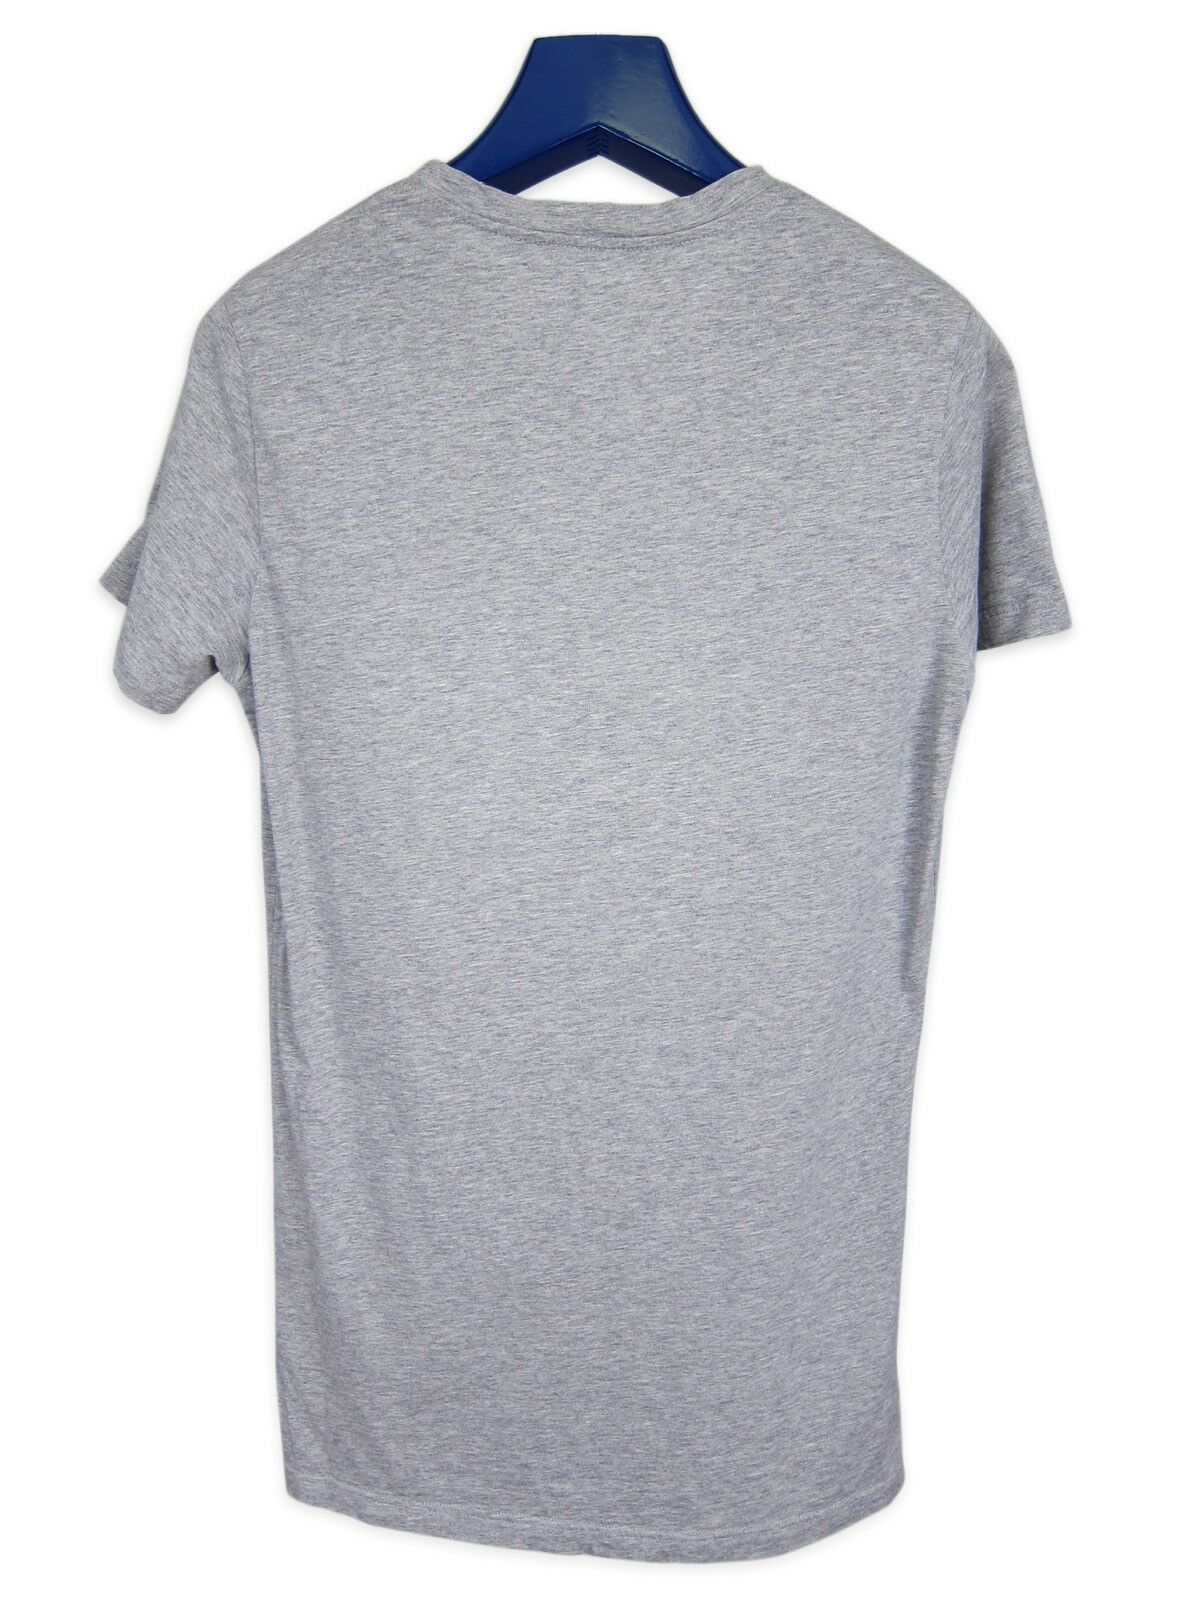 Balmain Heather Gris Distressed XS T-Shirt SS11 sz. XS Distressed 356ee8